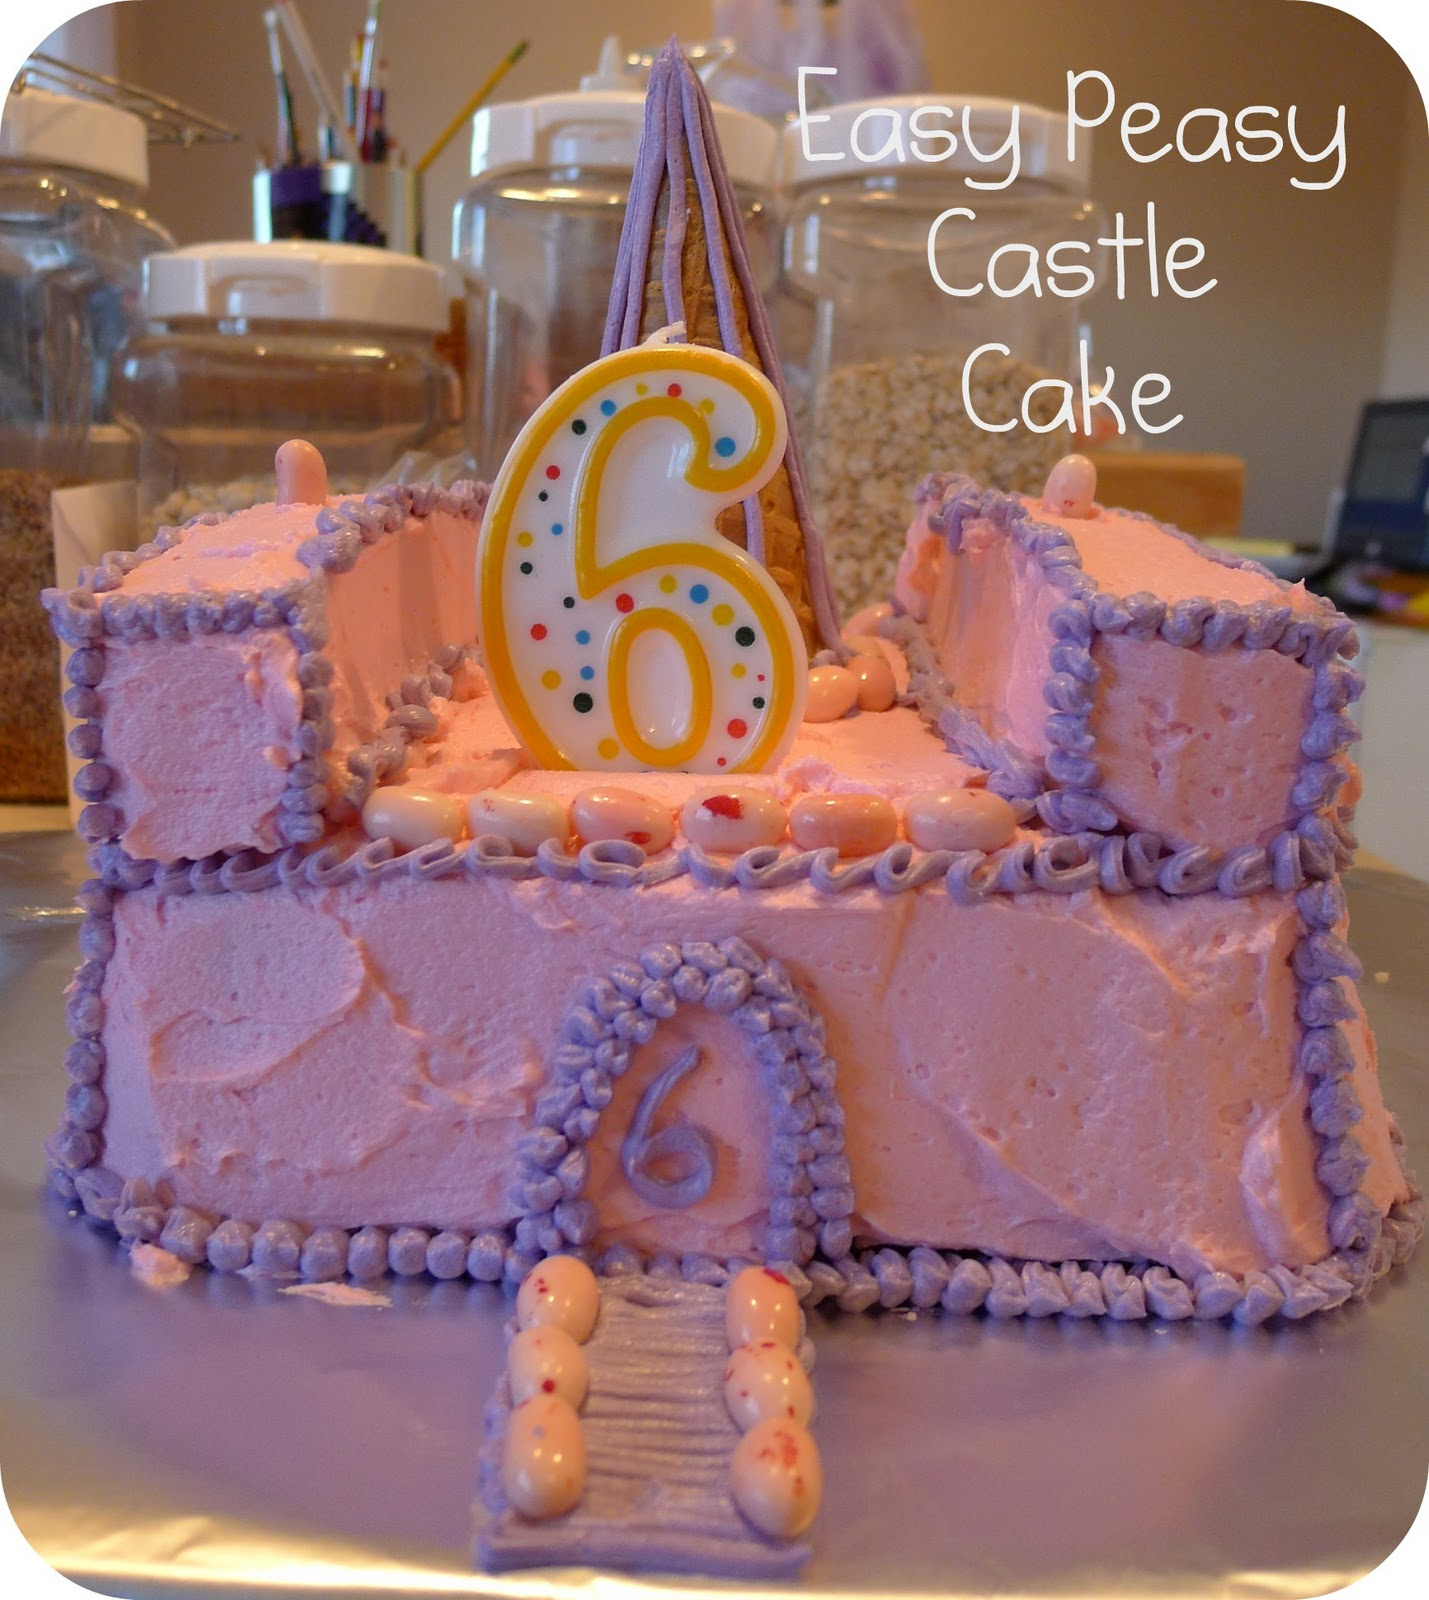 Easy Castle Cakes for Girls http://helpinglittlehands.blogspot.com/2011/01/easy-castle-cake.html